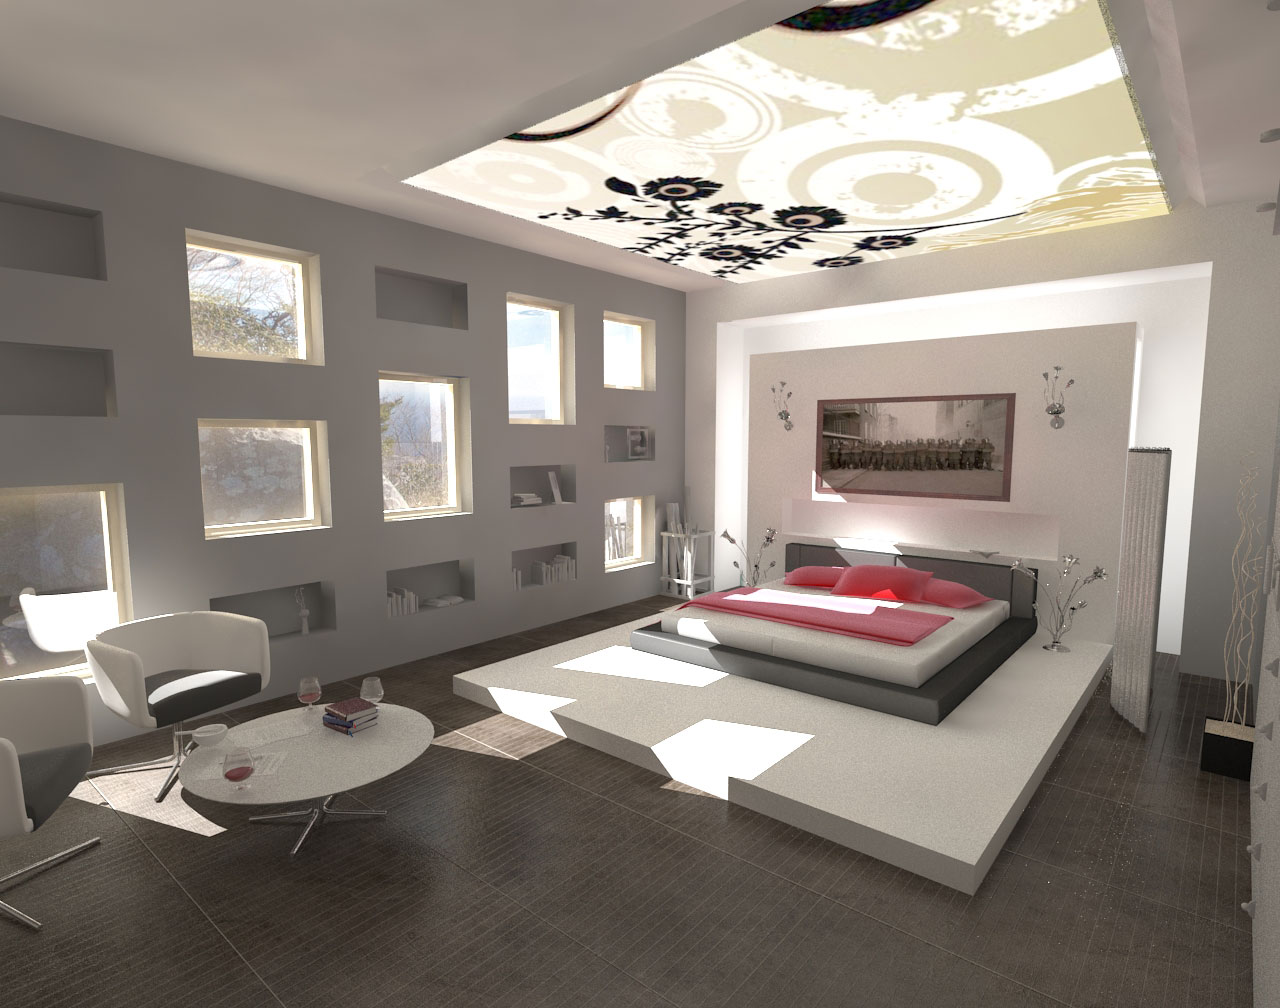 decorations minimalist design modern bedroom interior On bedroom interior design